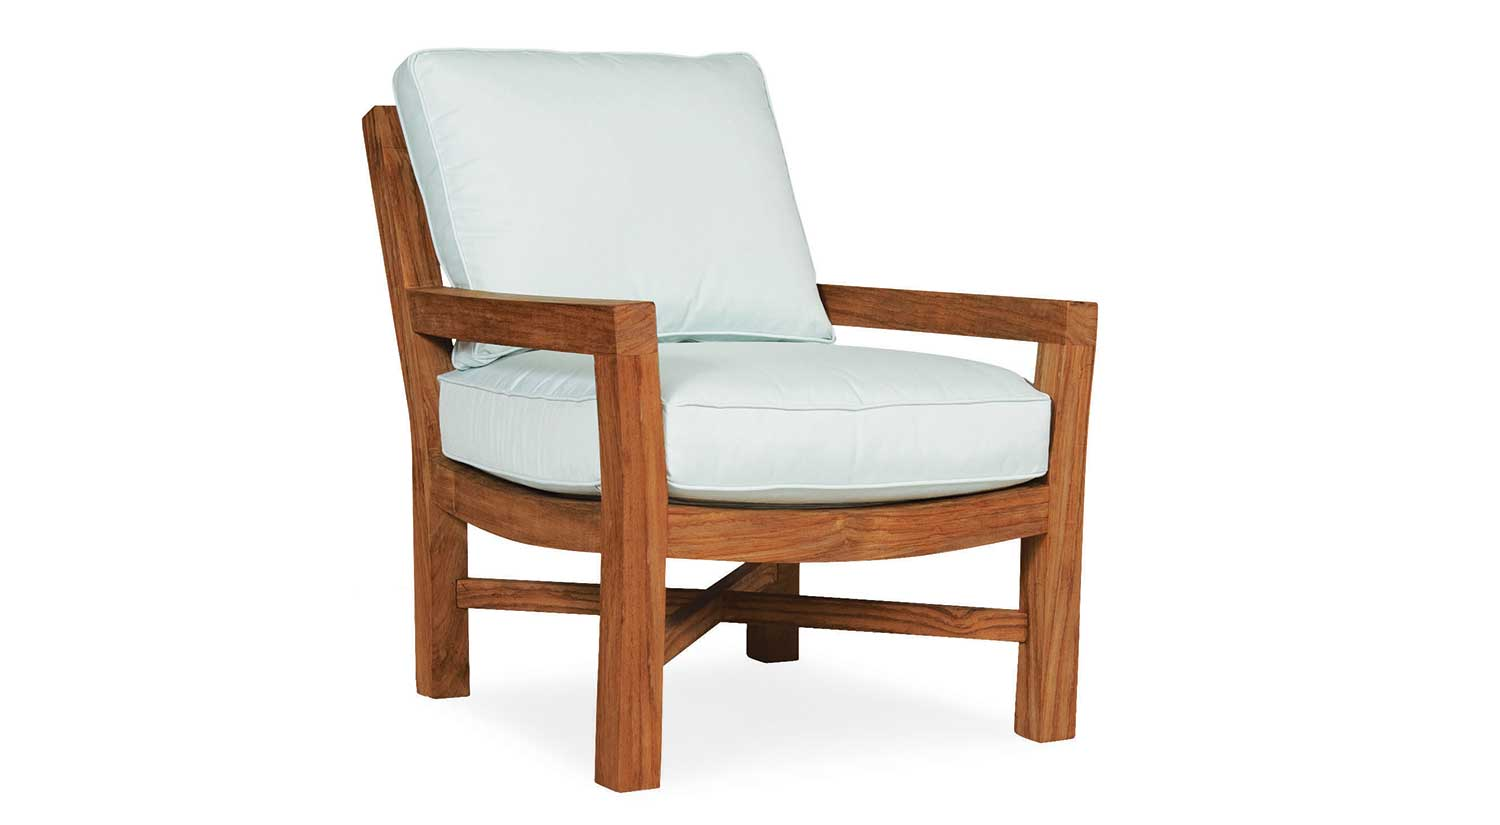 teak table and chairs garden travel potty chair outdoor furniture big nipples fucking